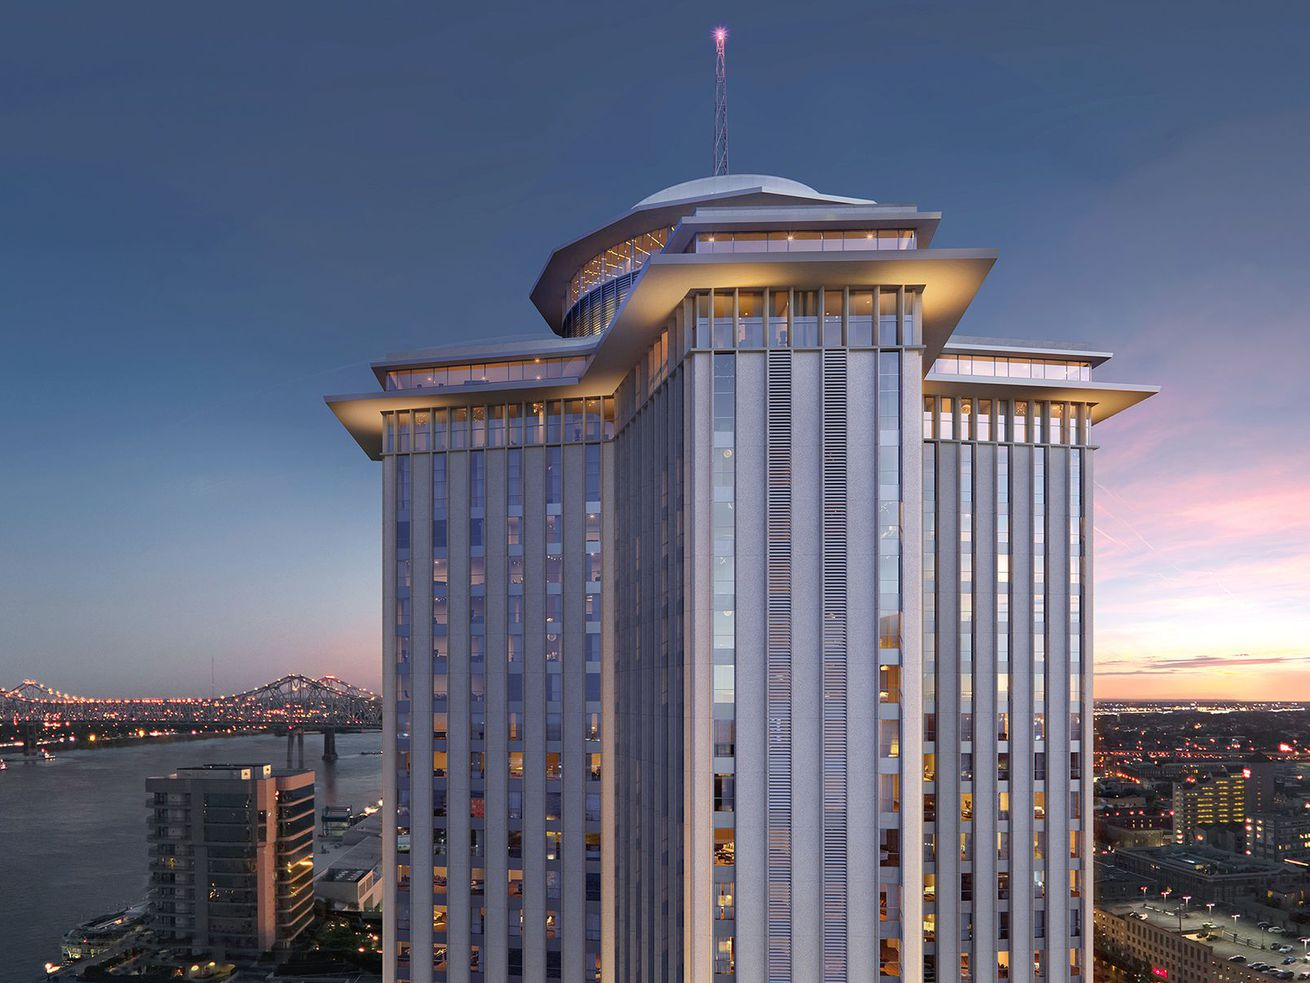 A rendering of the outside of the top floors of the World Trade Center in New Orleans includes a sunset skyline of the Mississippi River and the city below it.